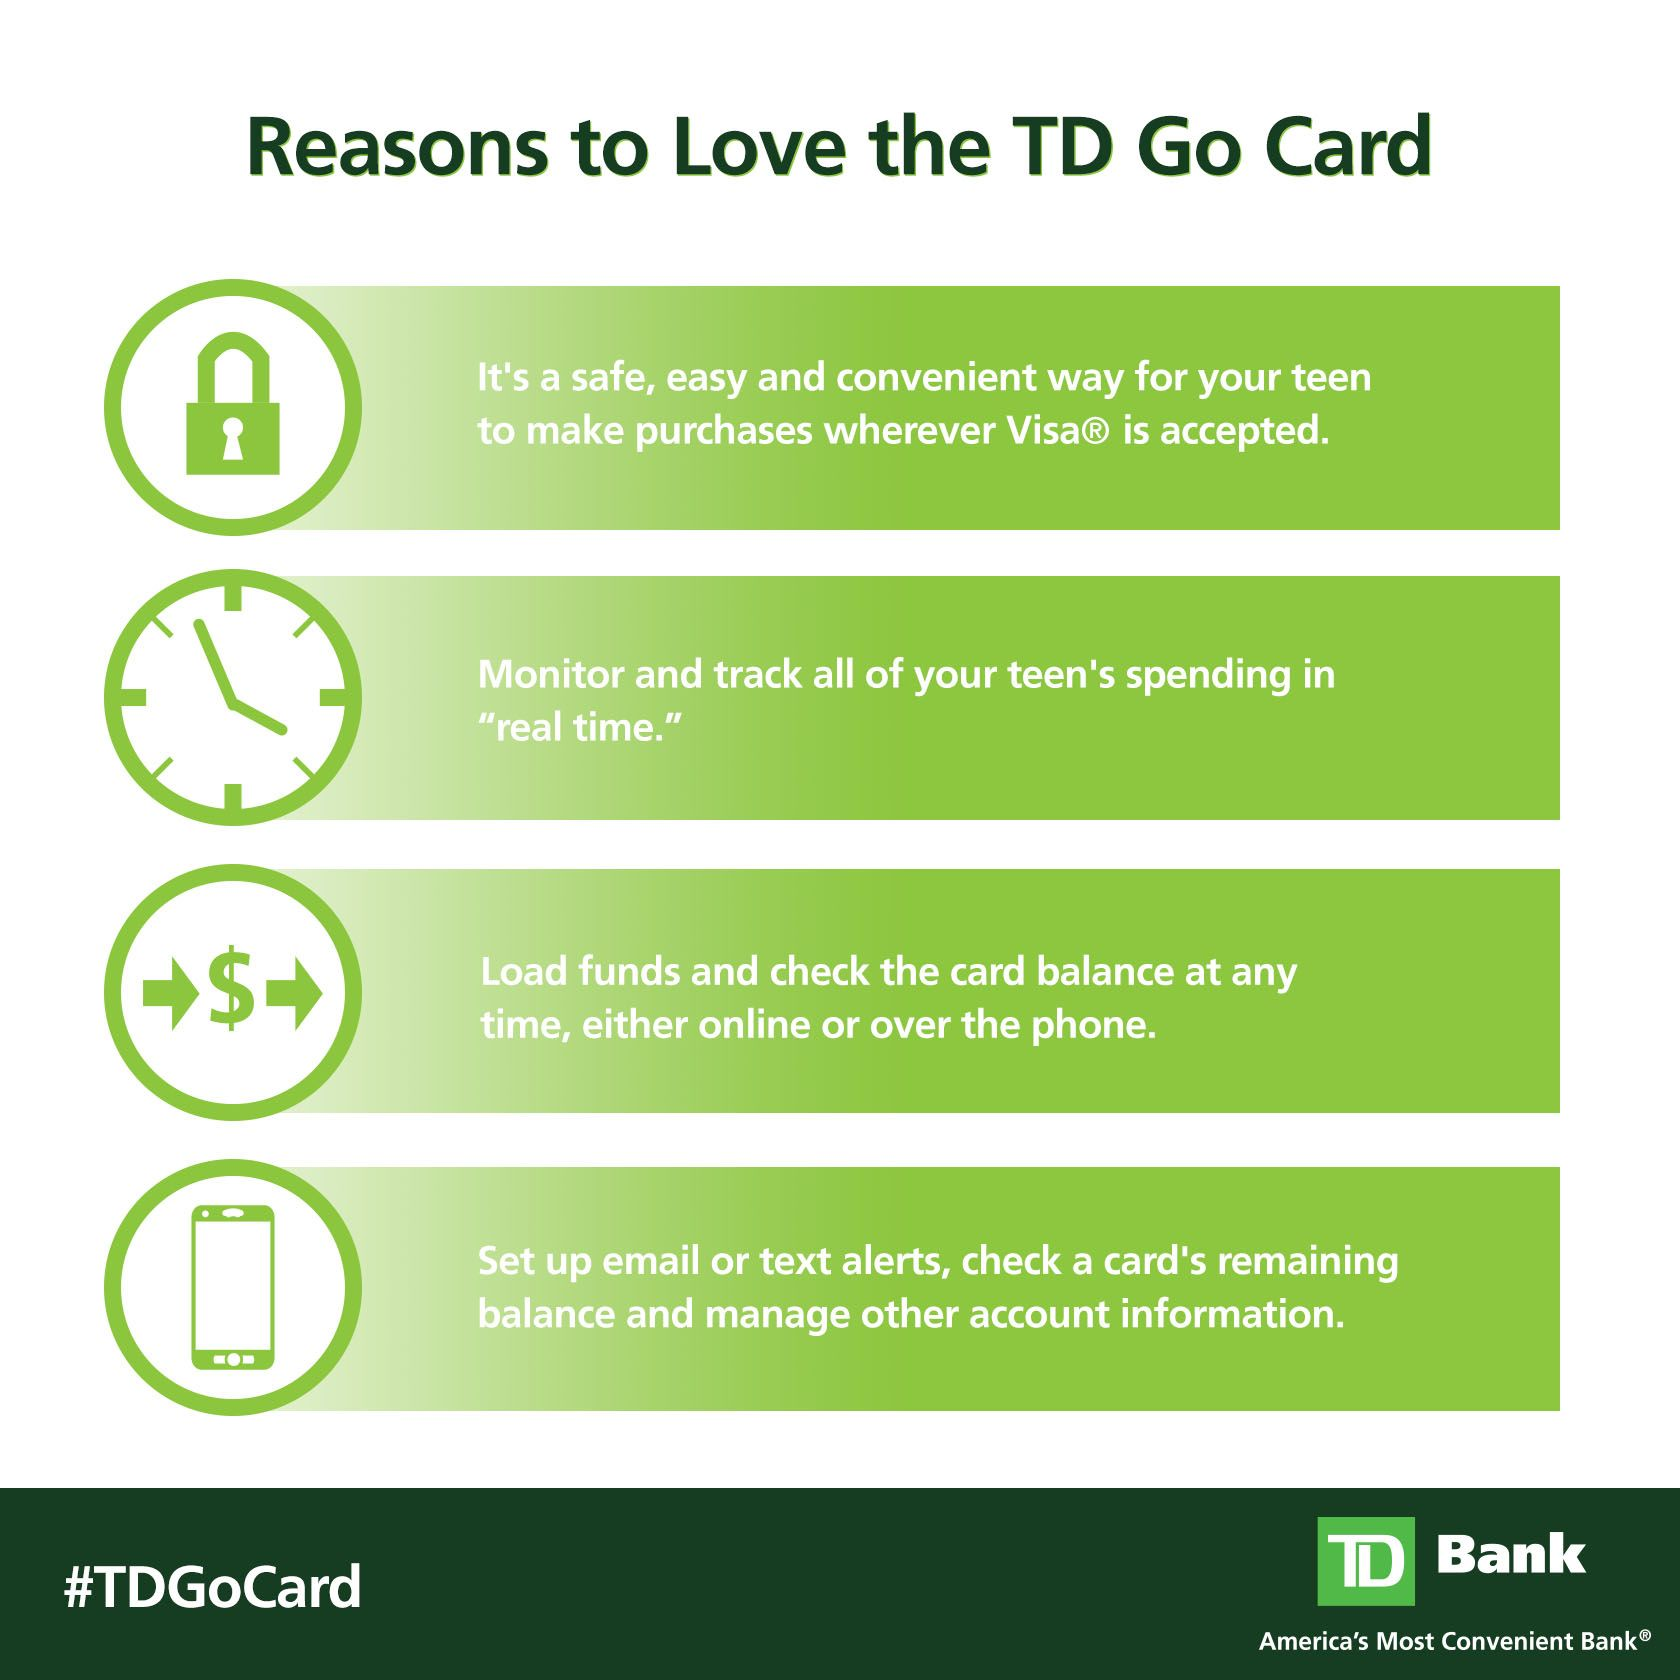 Pin by TD Bank - America's Most Convenient Bank® on Banking